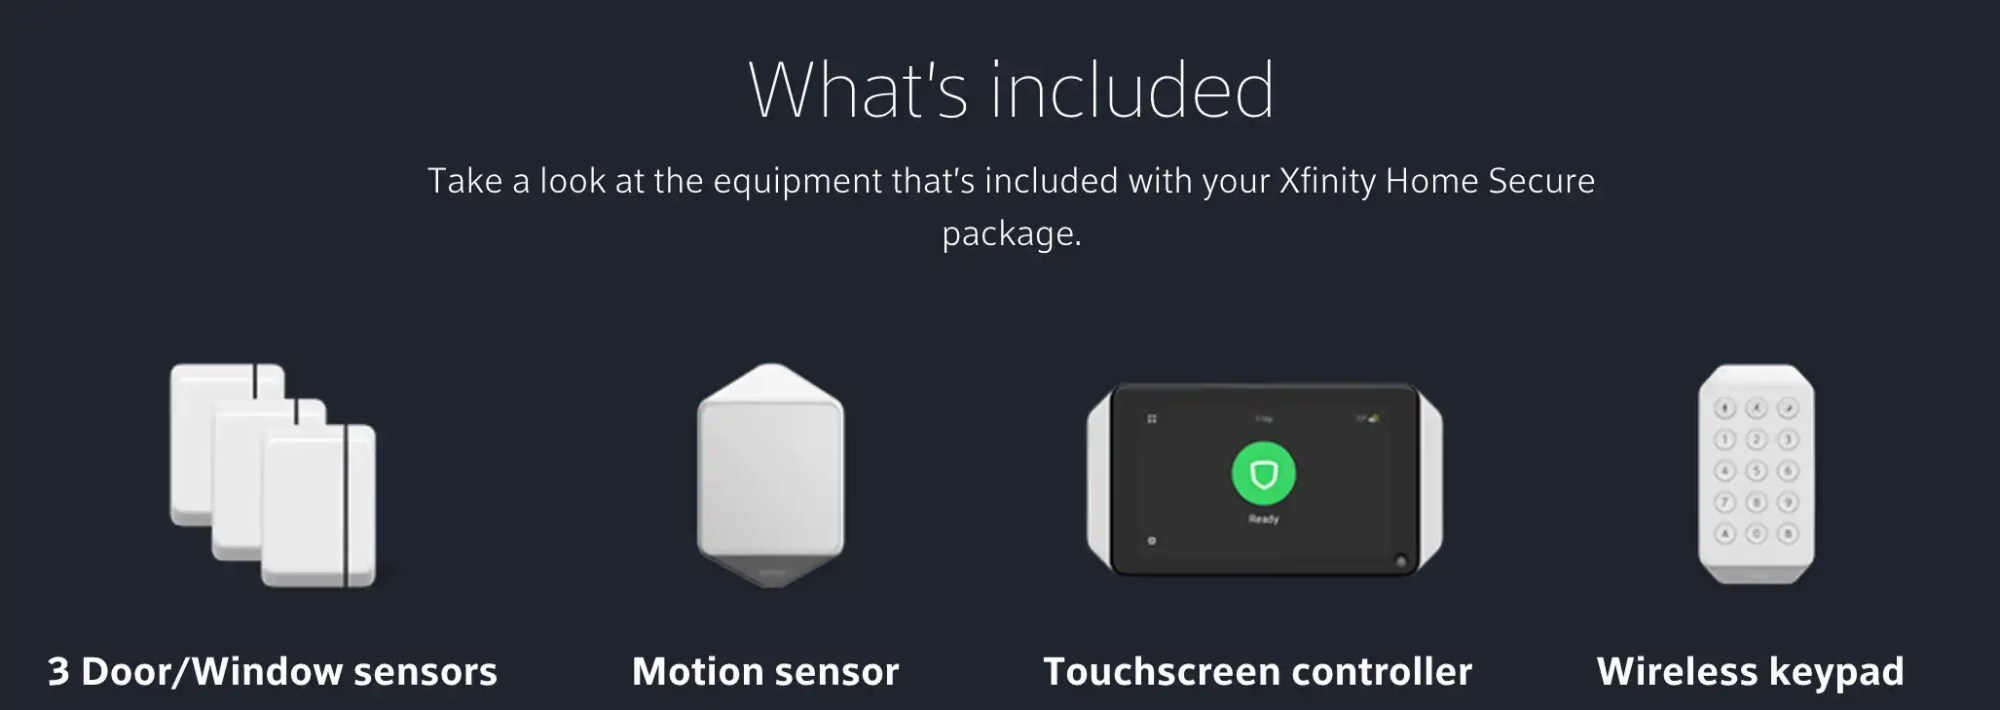 hight resolution of xfinity comcast security included equipment